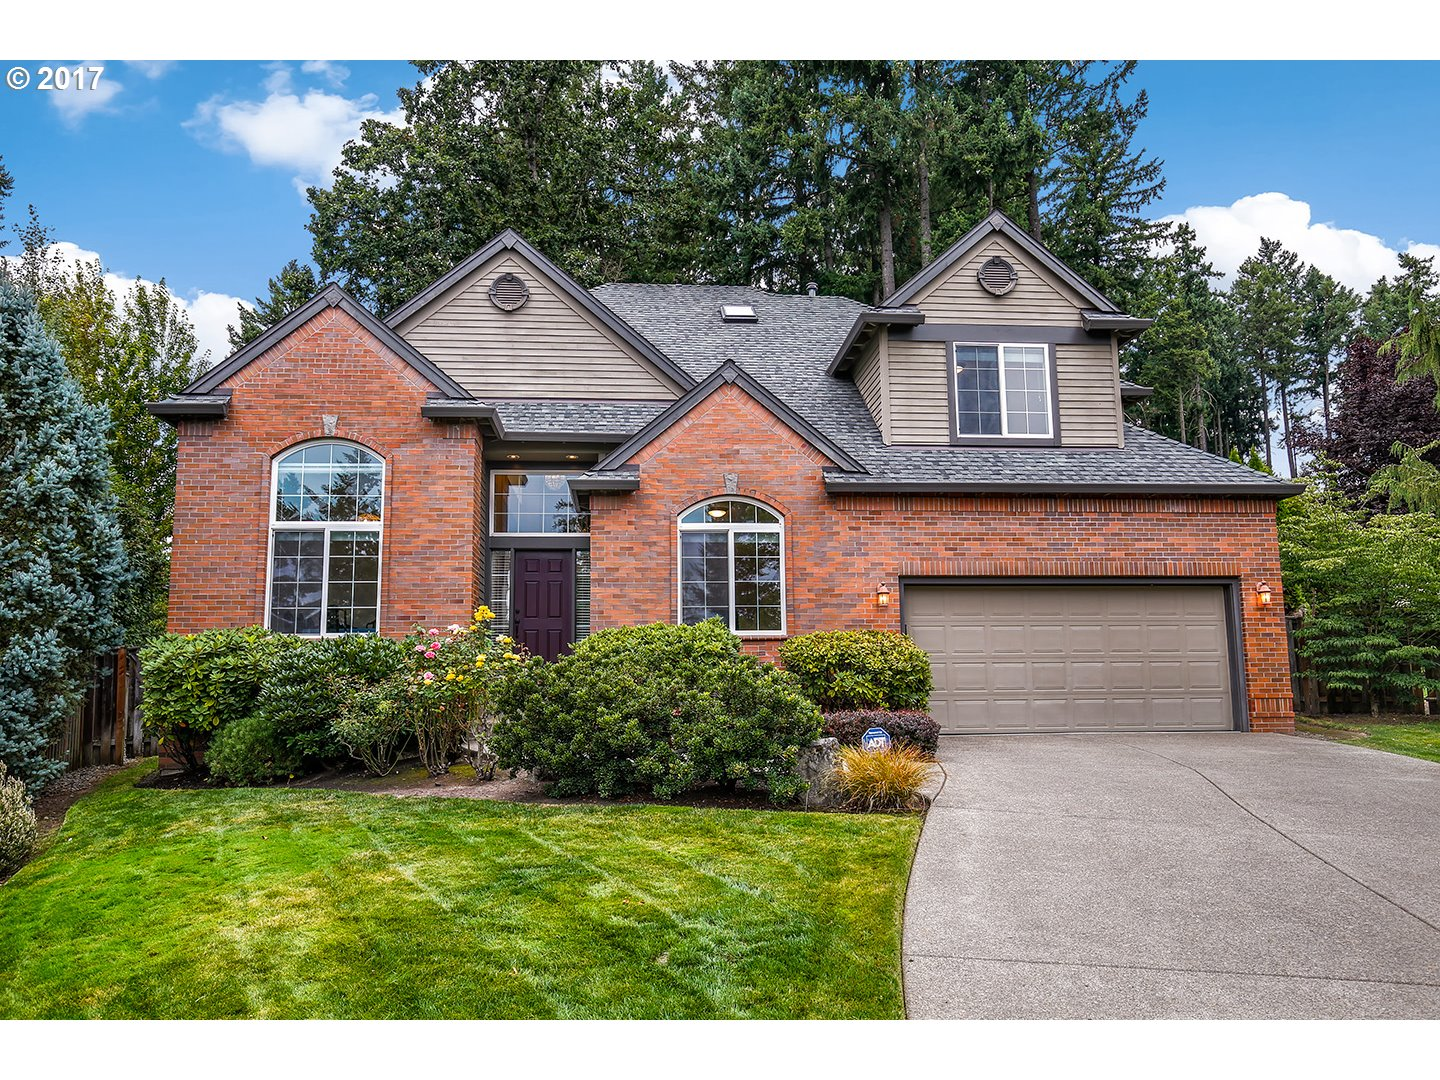 Stunning & immaculately maintained custom home built by Ridgecrest Homes, one of the most sought after builders in the PNW. Located on a quiet cul-de-sac on an over-sized private lot, this spacious & light filled home features an open floor plan, tall ceilings, skylights, formal dining, large kitchen w/ eat-in island, loft, & master on main w/ fireplace, patio access, walk in closet and en suite w/ jet tub & dual vanity. Original owner!